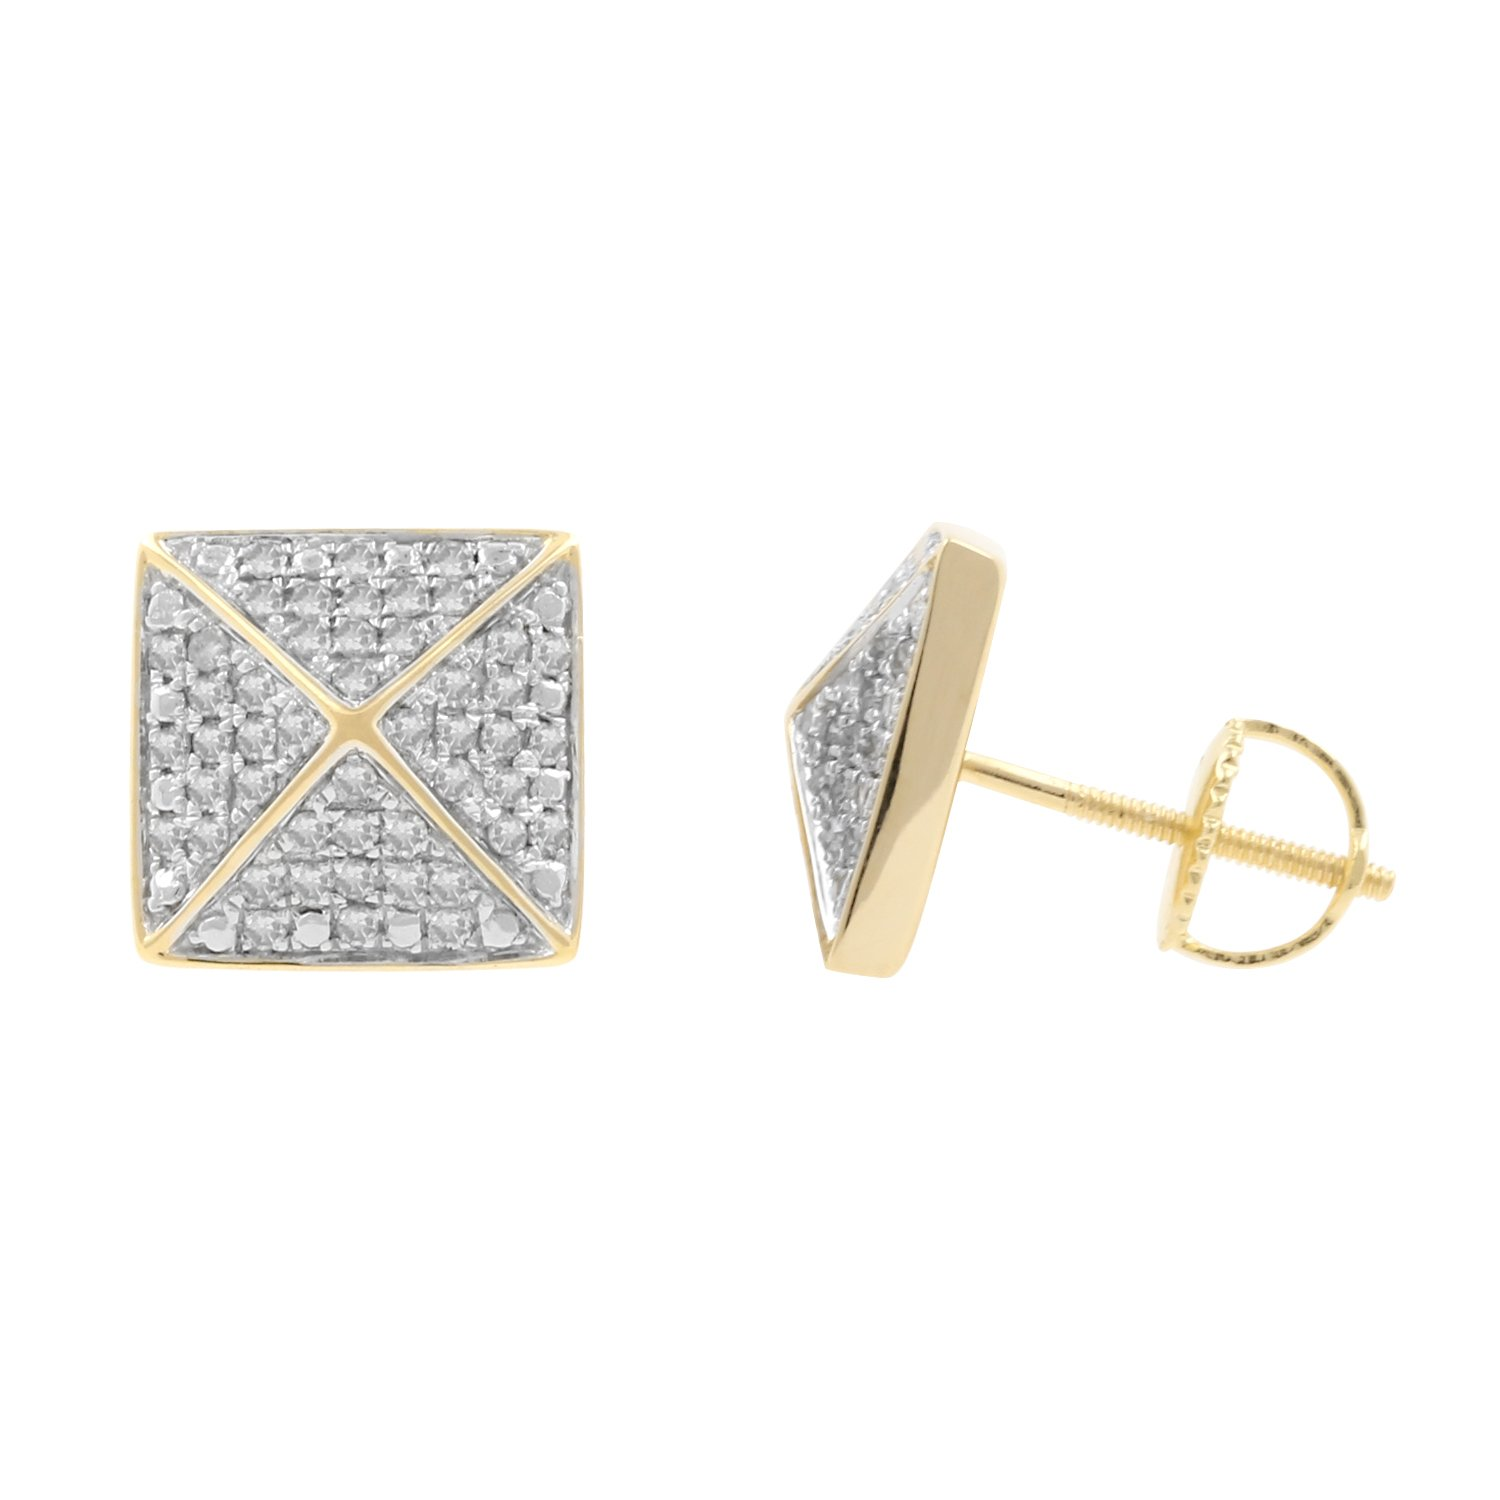 0.50ct Diamond Pyramid 11mm Wide Mens Iced Stud Earrings in Yellow Gold Over 925 Silver-1/2 CTTW (I-J, I2-I3)